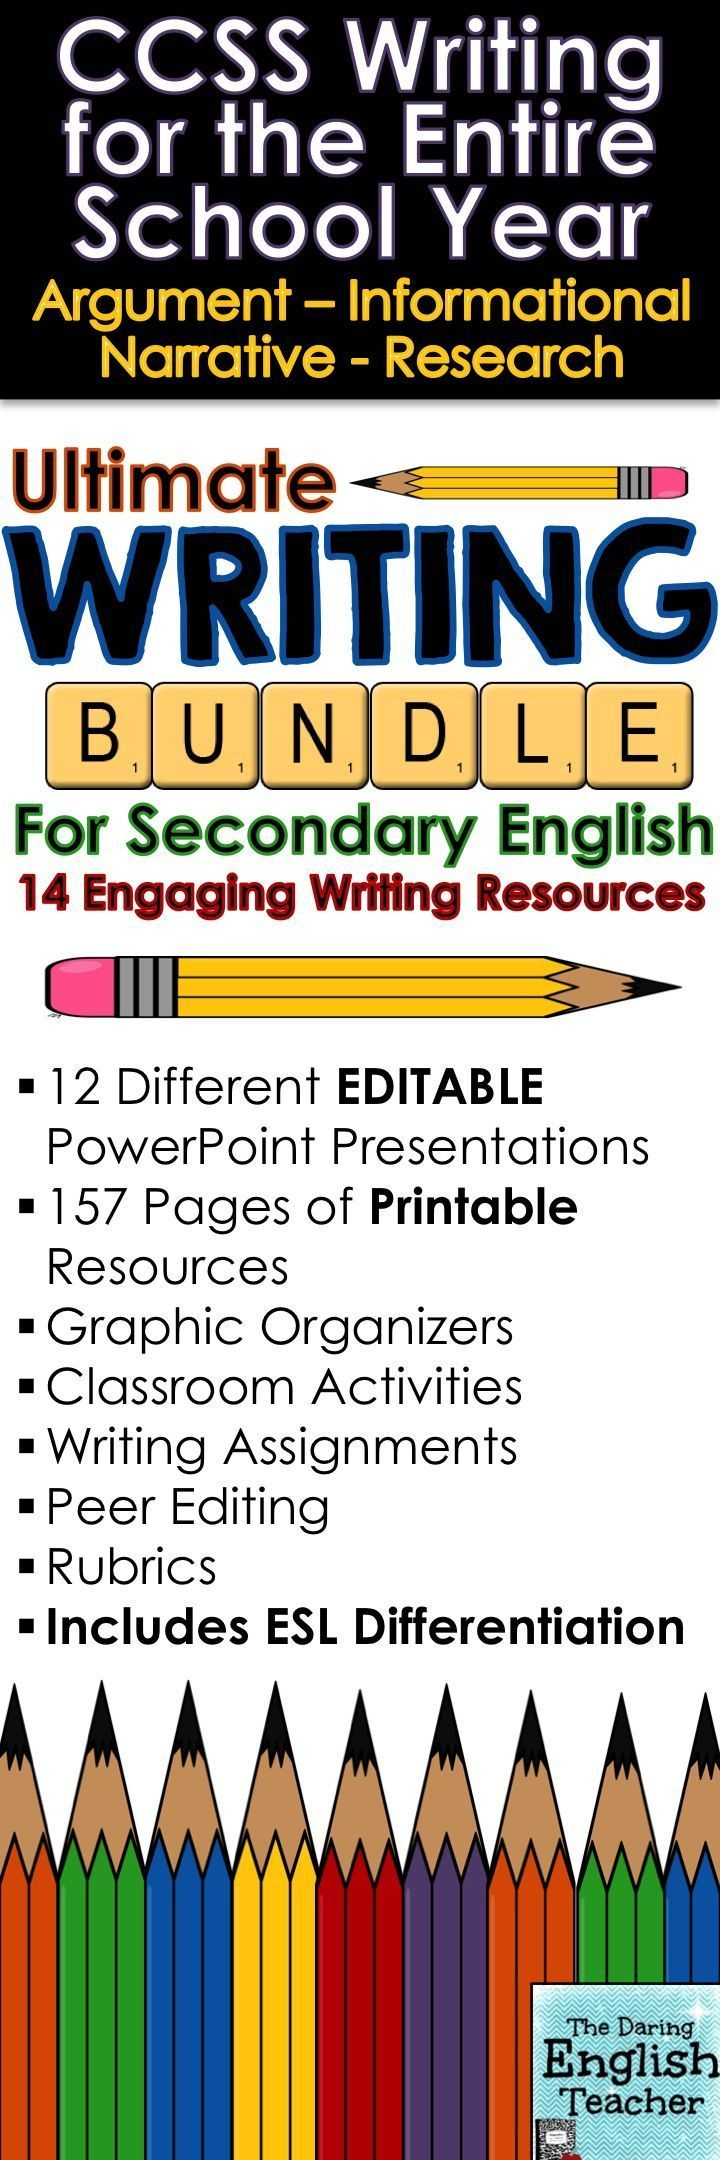 This Ultimate Writing Bundle includes an entire year's worth of common core writing instruction and assignments for secondary English teachers. There are 365 slides of editable PowerPoint presentations and 157 pages of printable resources. Teaching writing. Common Core Writing. High School English. Middle School English.